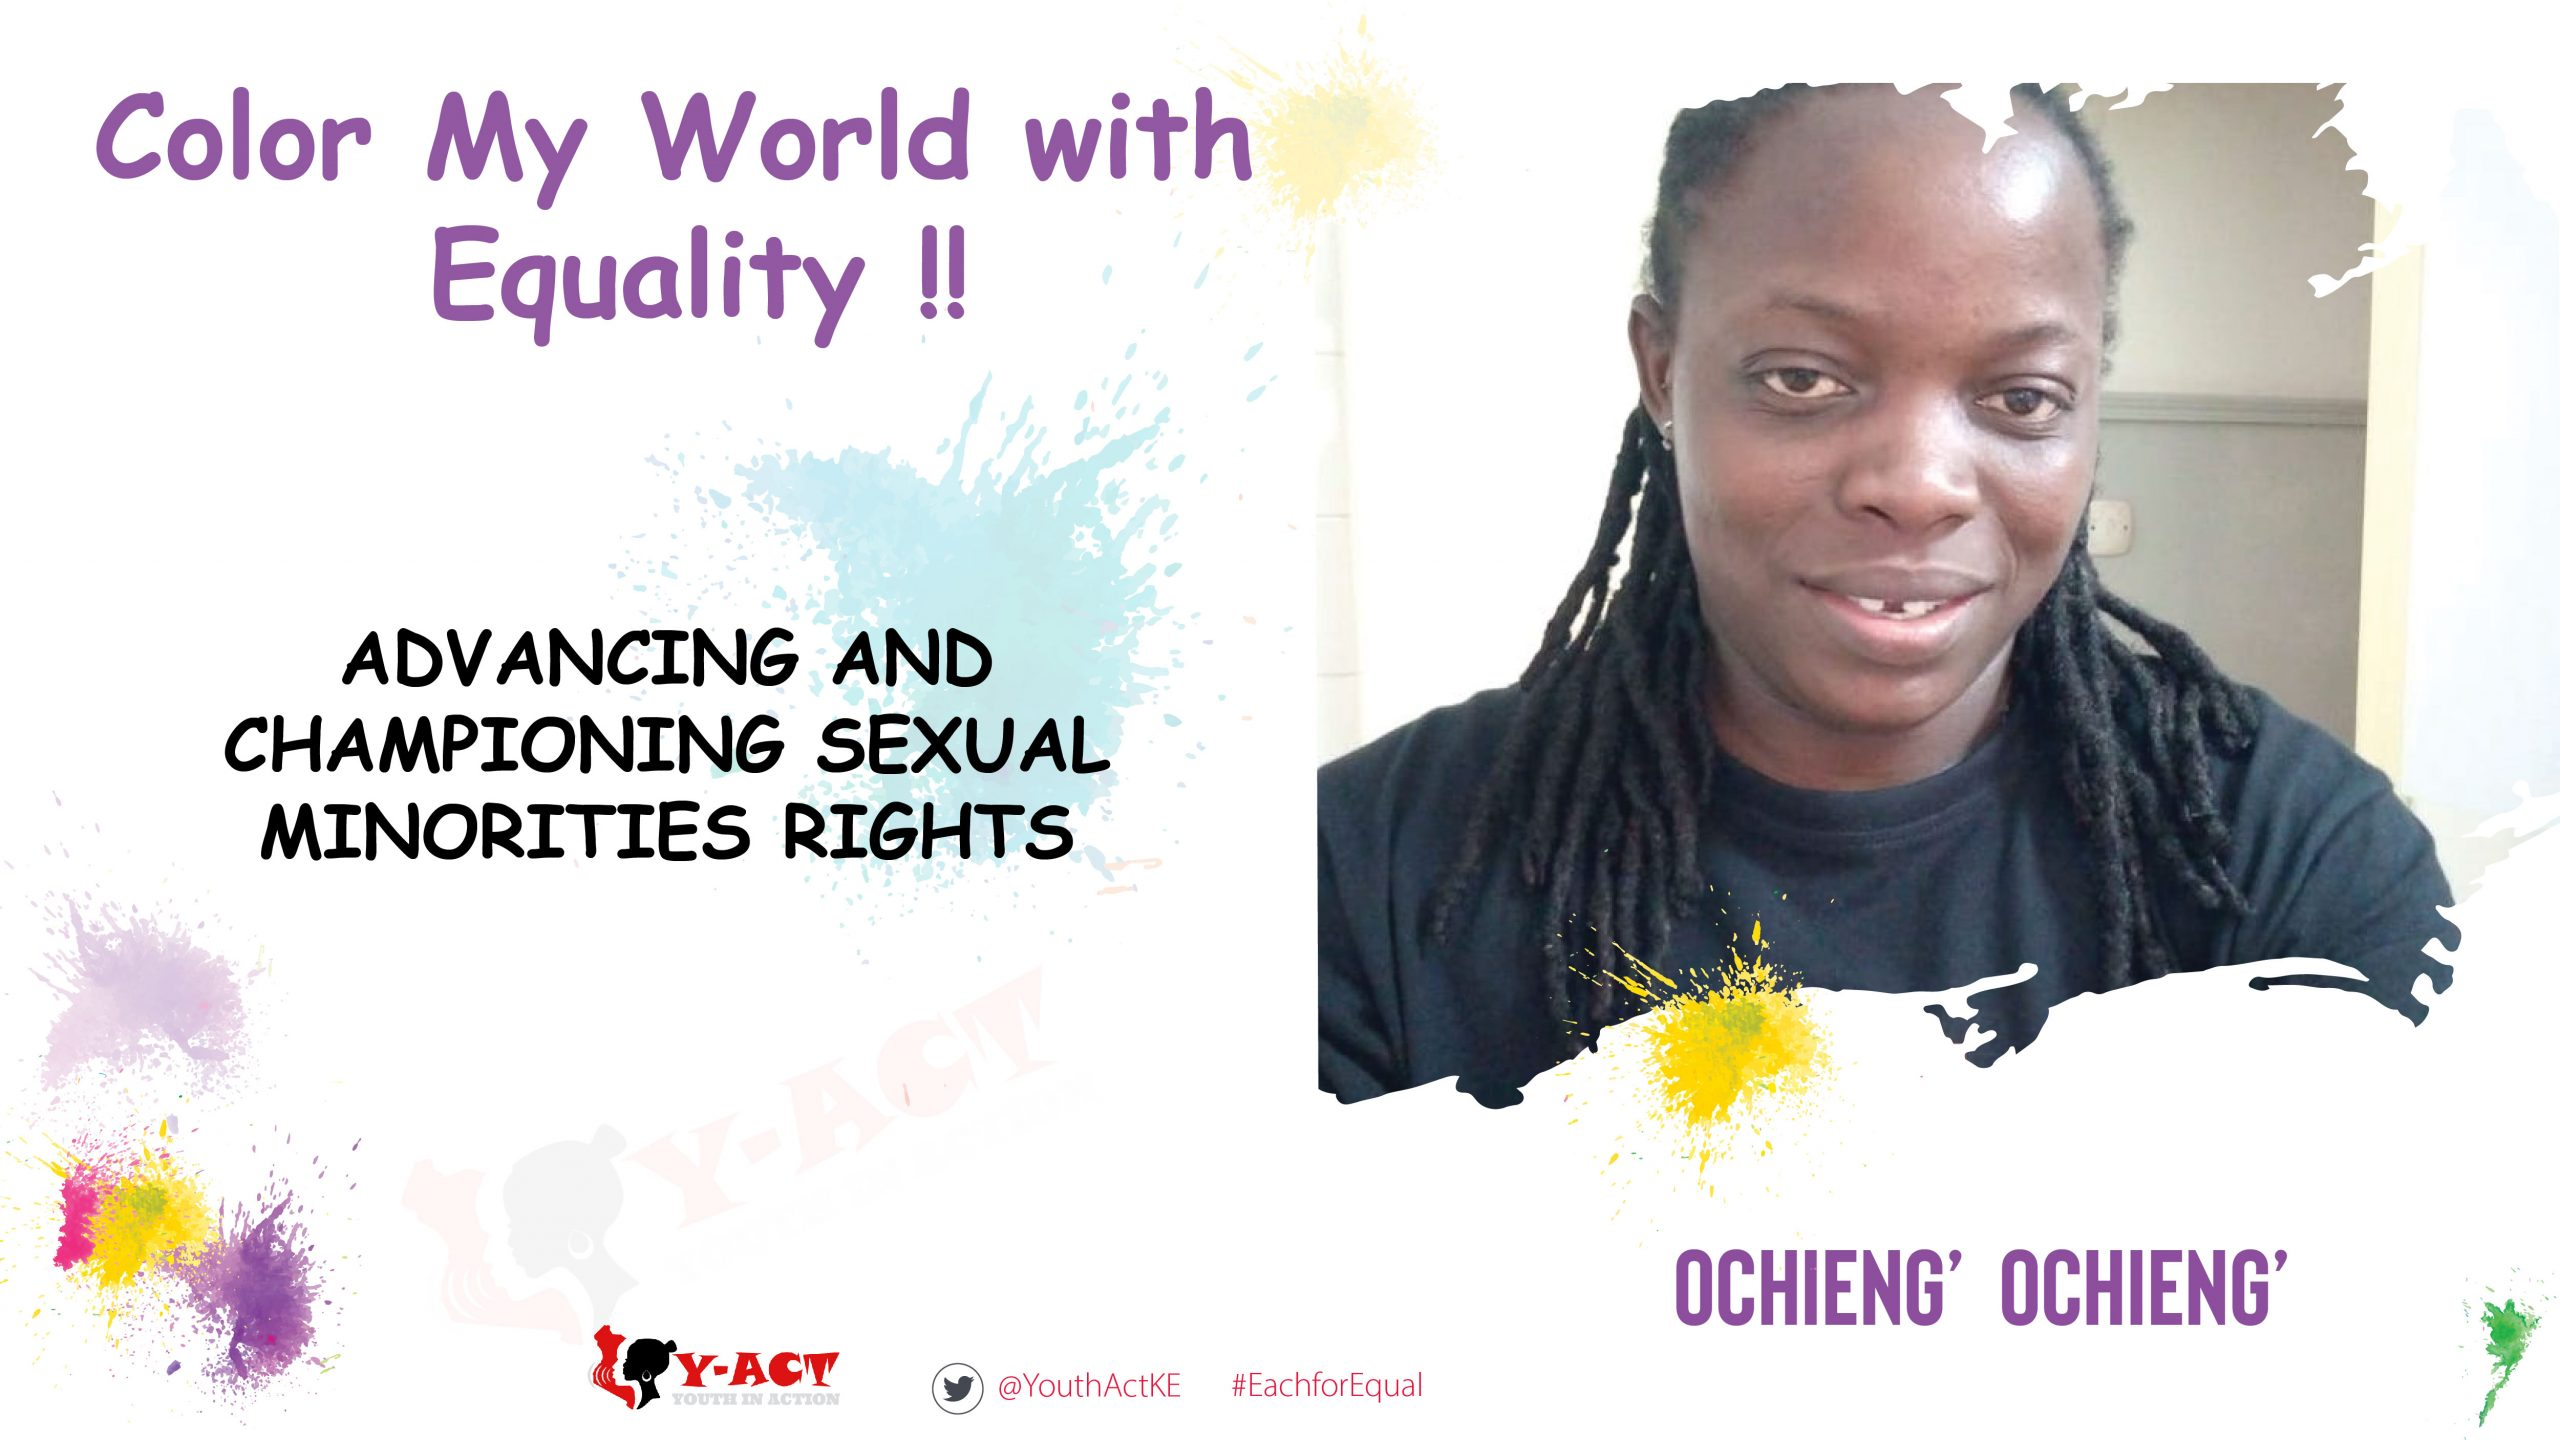 MAURICIO OCHIENG' – COLOR MY WORLD COMPETITION WINNER- WOMEN ADVANCING AND CHAMPIONING SEXUAL MINORITIES RIGHTS.